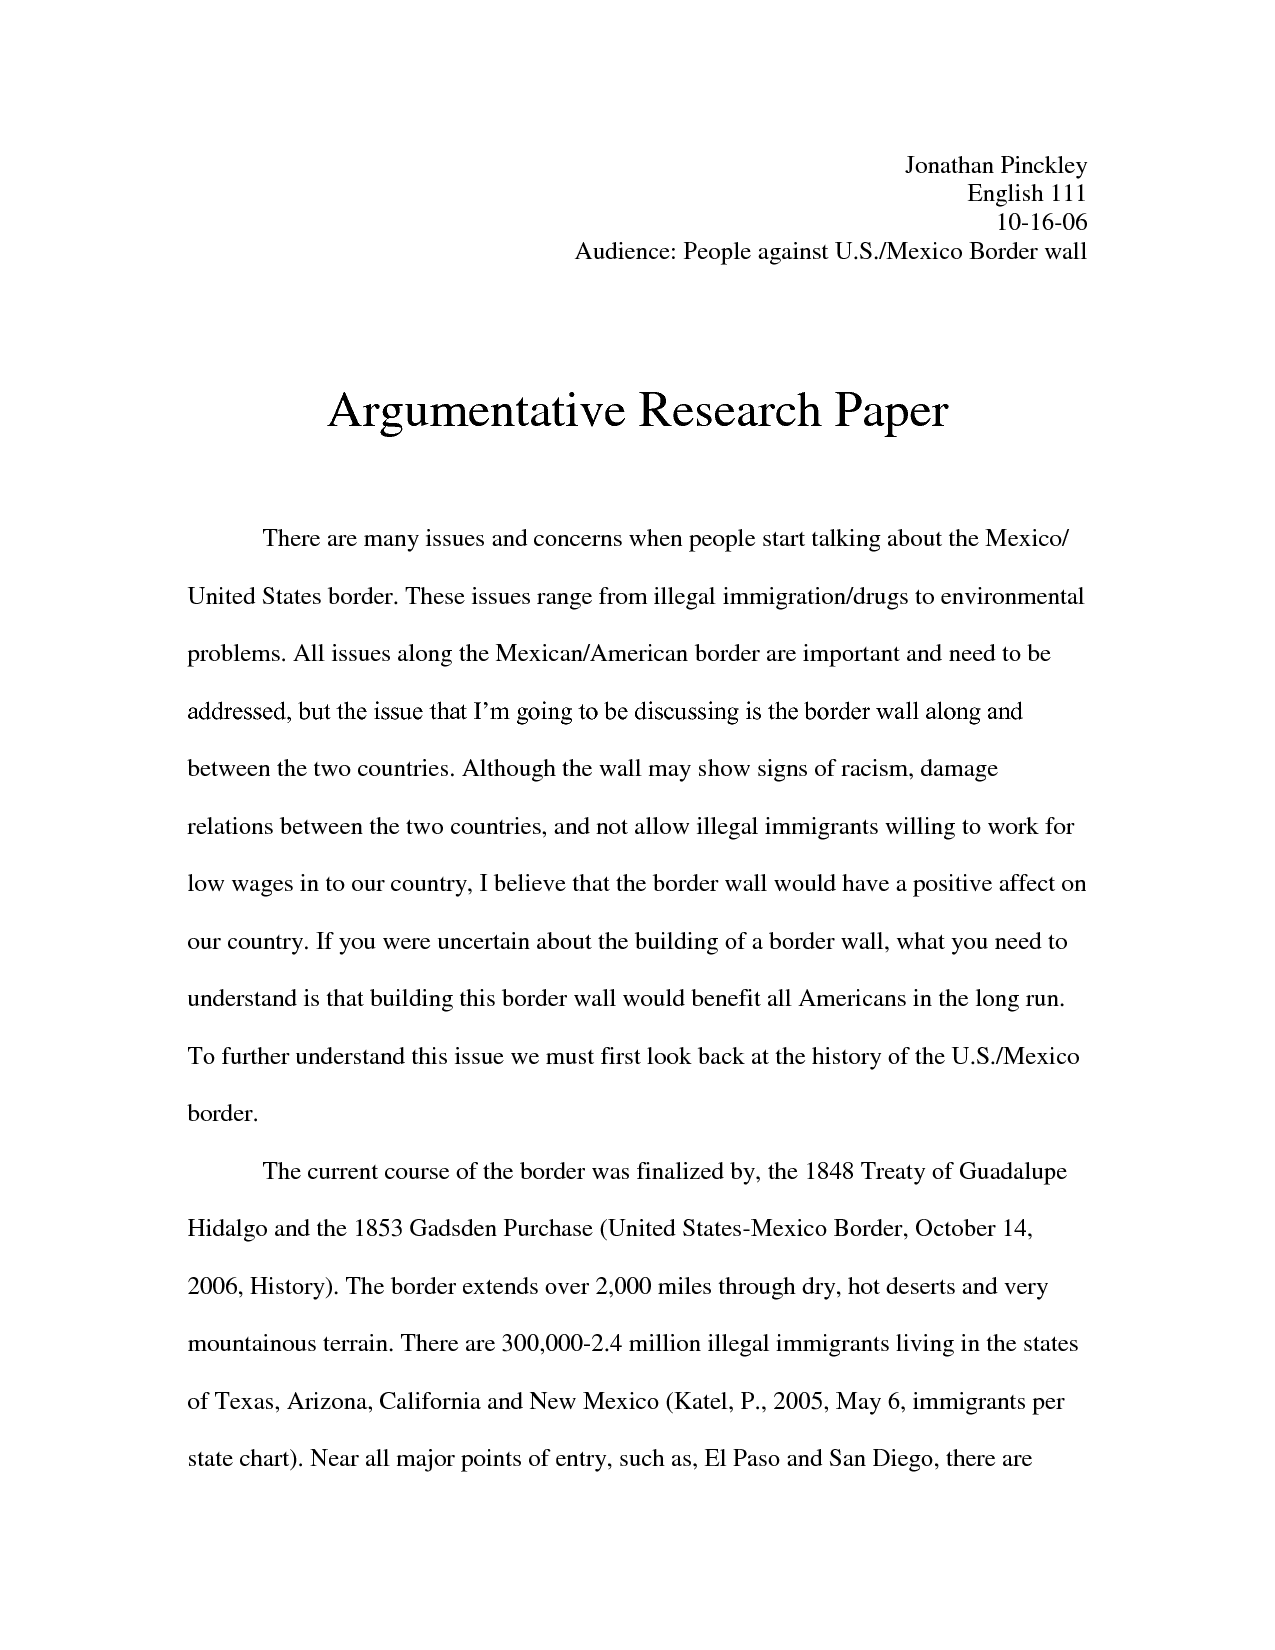 014 Uncategorized Debate20y Argumentative Thesis High School Topics Sentence Starters Outline Worksheet Structure20 For Research Rare A Paper Easy Papers Interesting Full